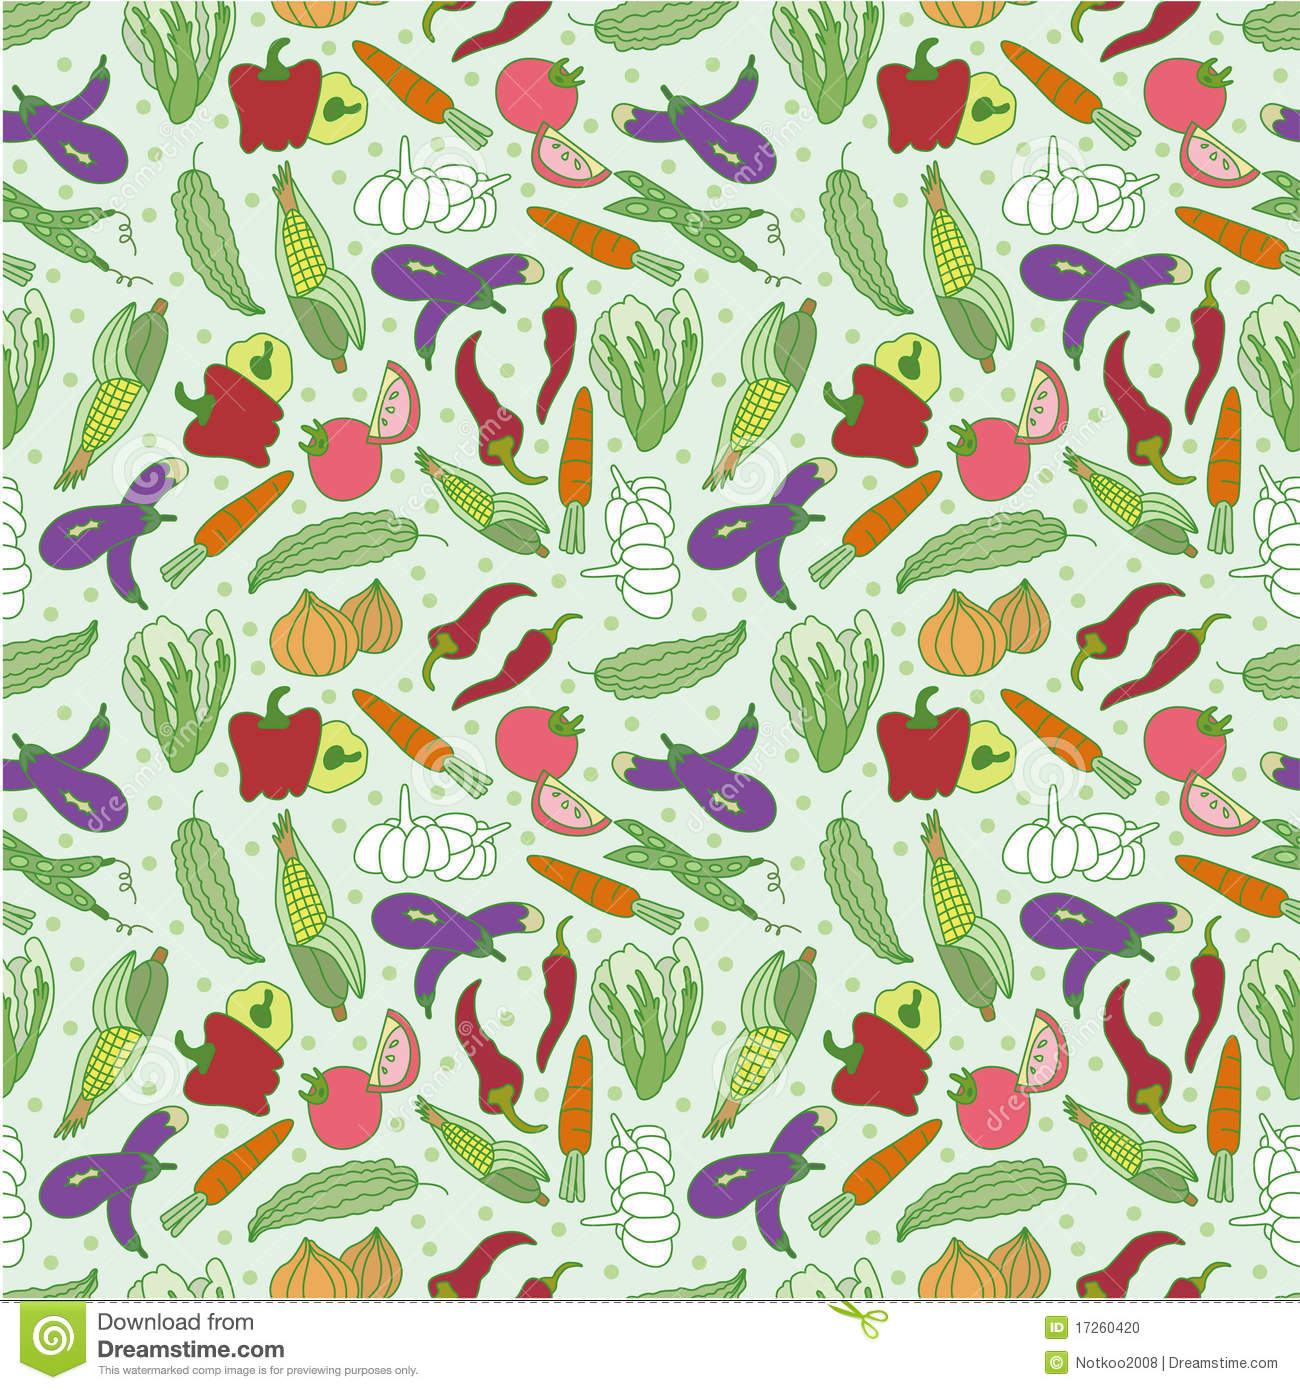 Vegetable pattern - photo#6